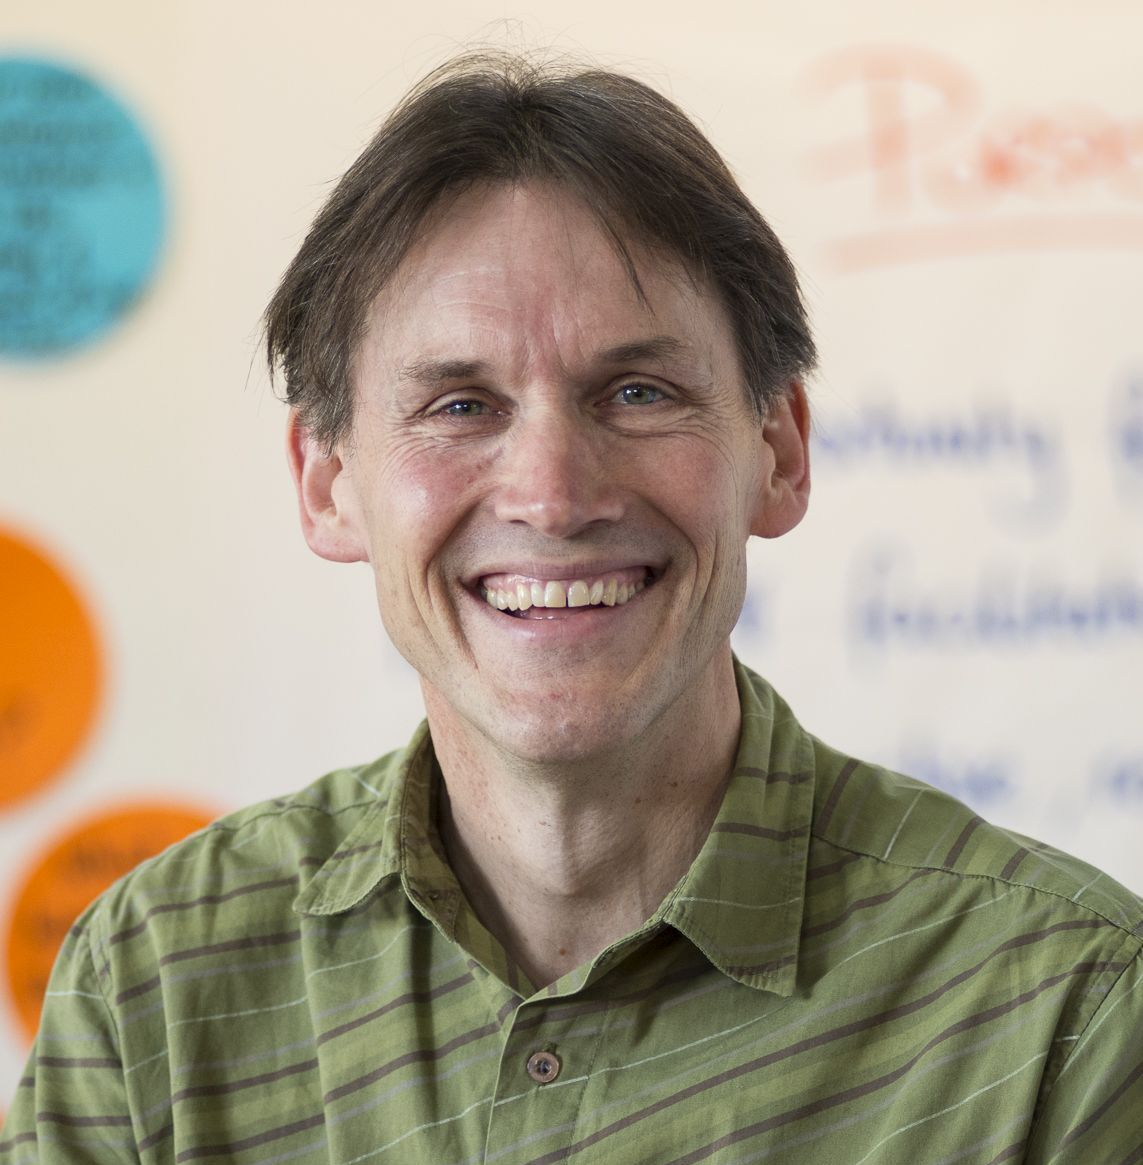 Smiling man in his 50s in a work shirt with no tie, head and shoulders only, whiteboard/workshop background